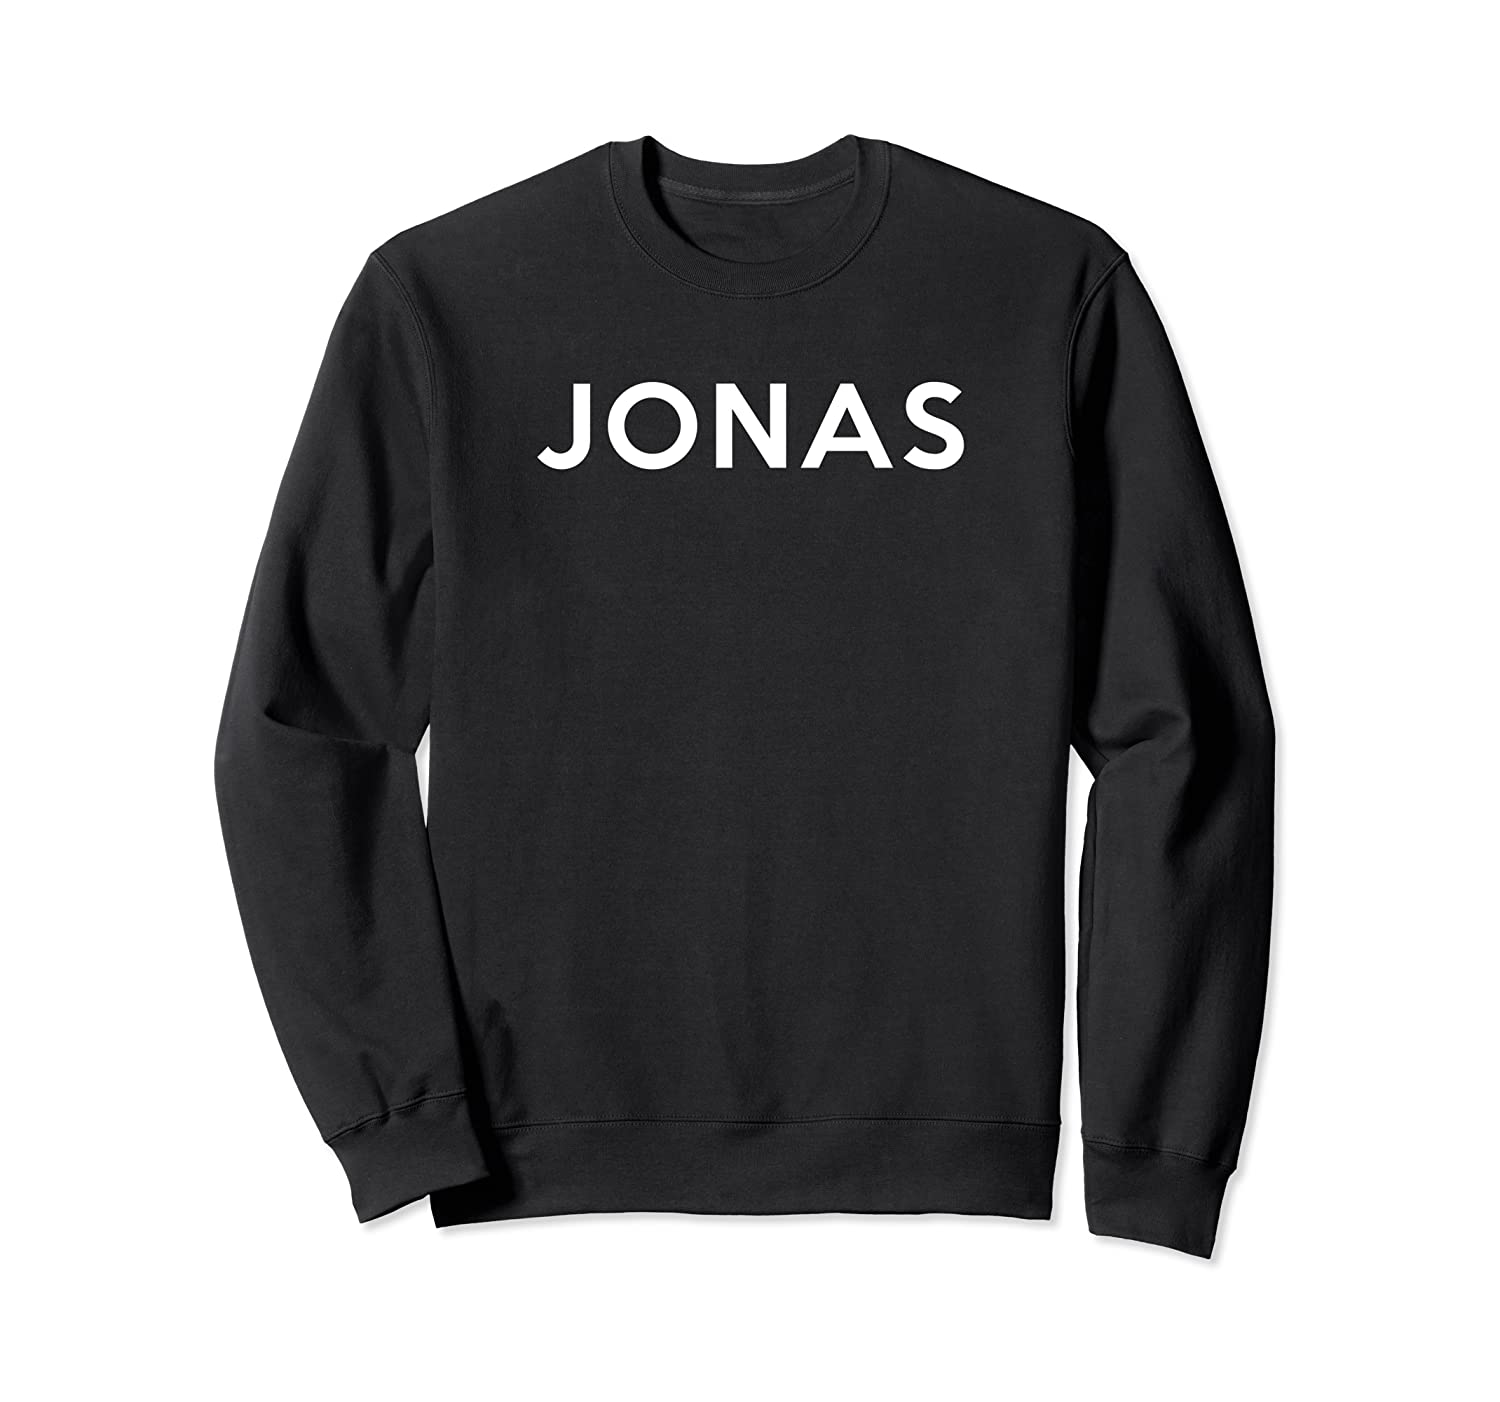 Jonas First Given Name Pride Funny The Original Shirts